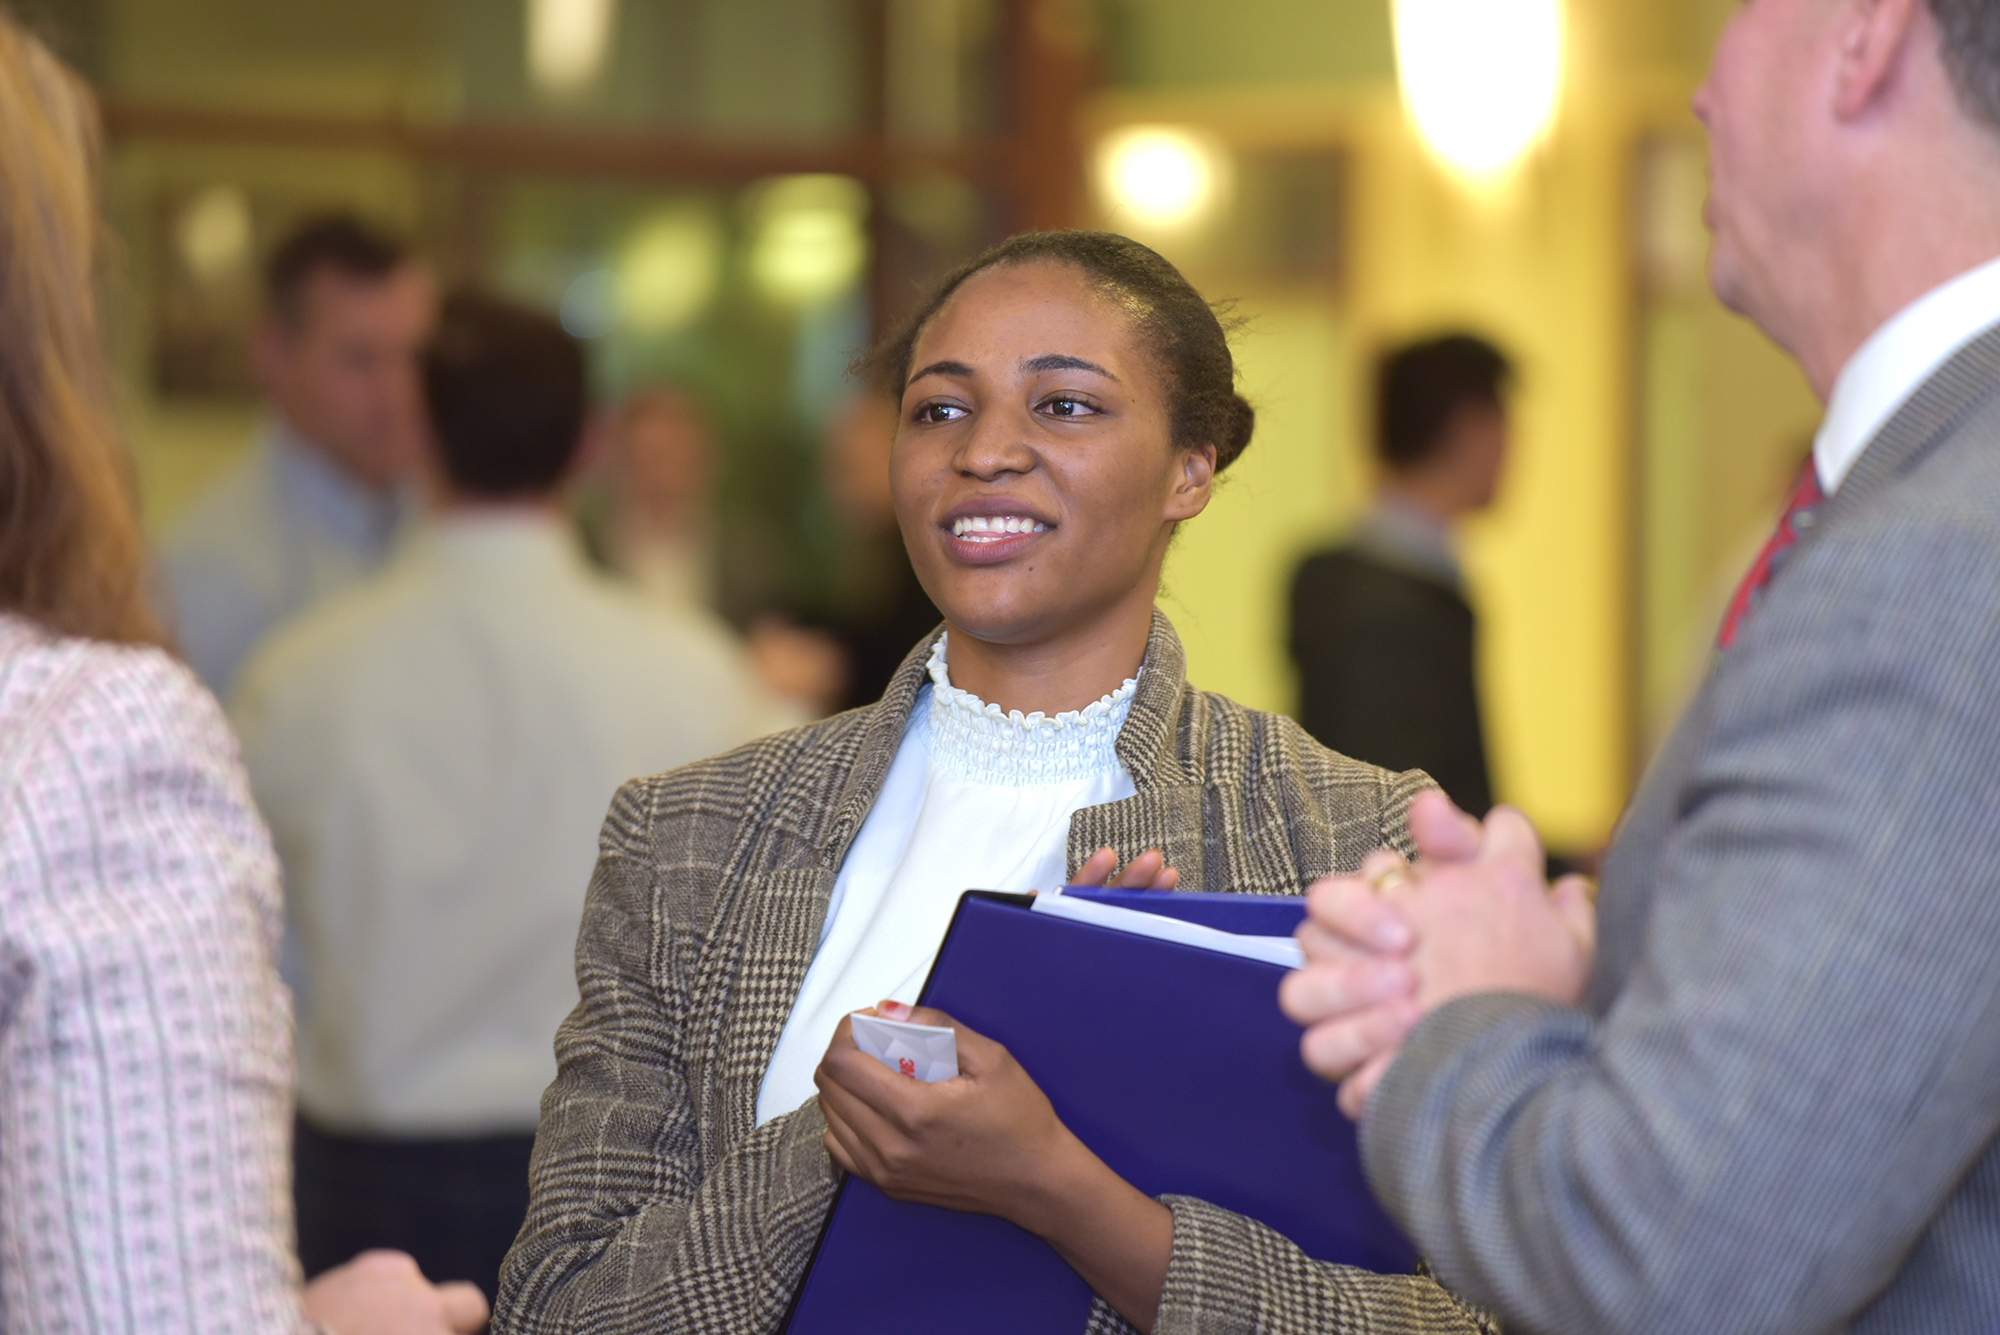 Student and employers meet at Sales Leadership Career Fair